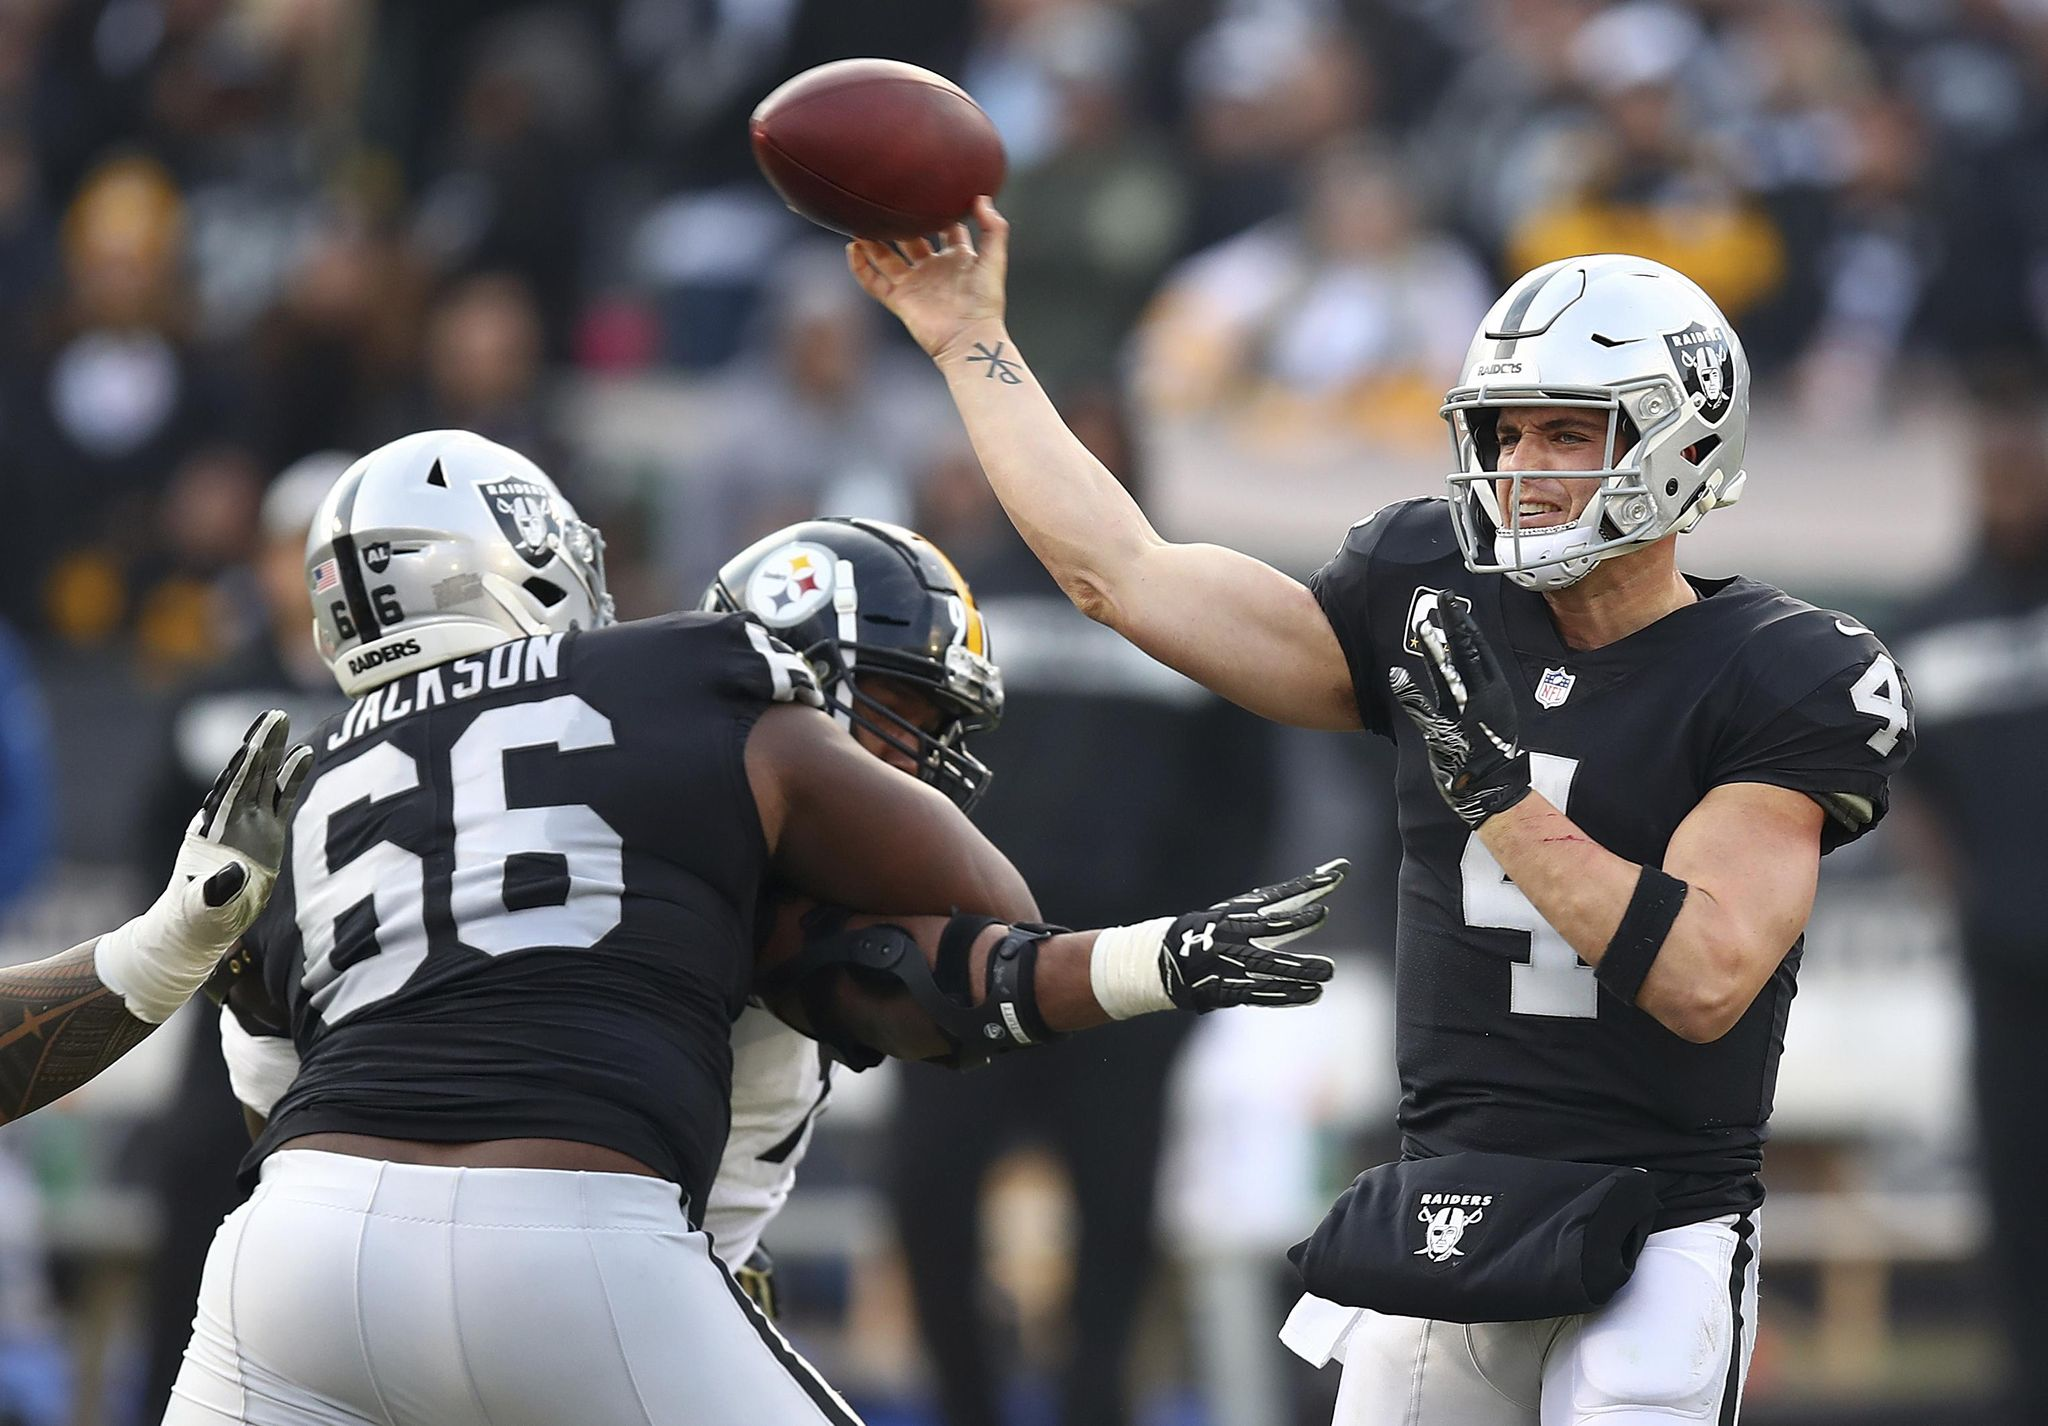 Steelers_raiders_football_26494_s2048x1426